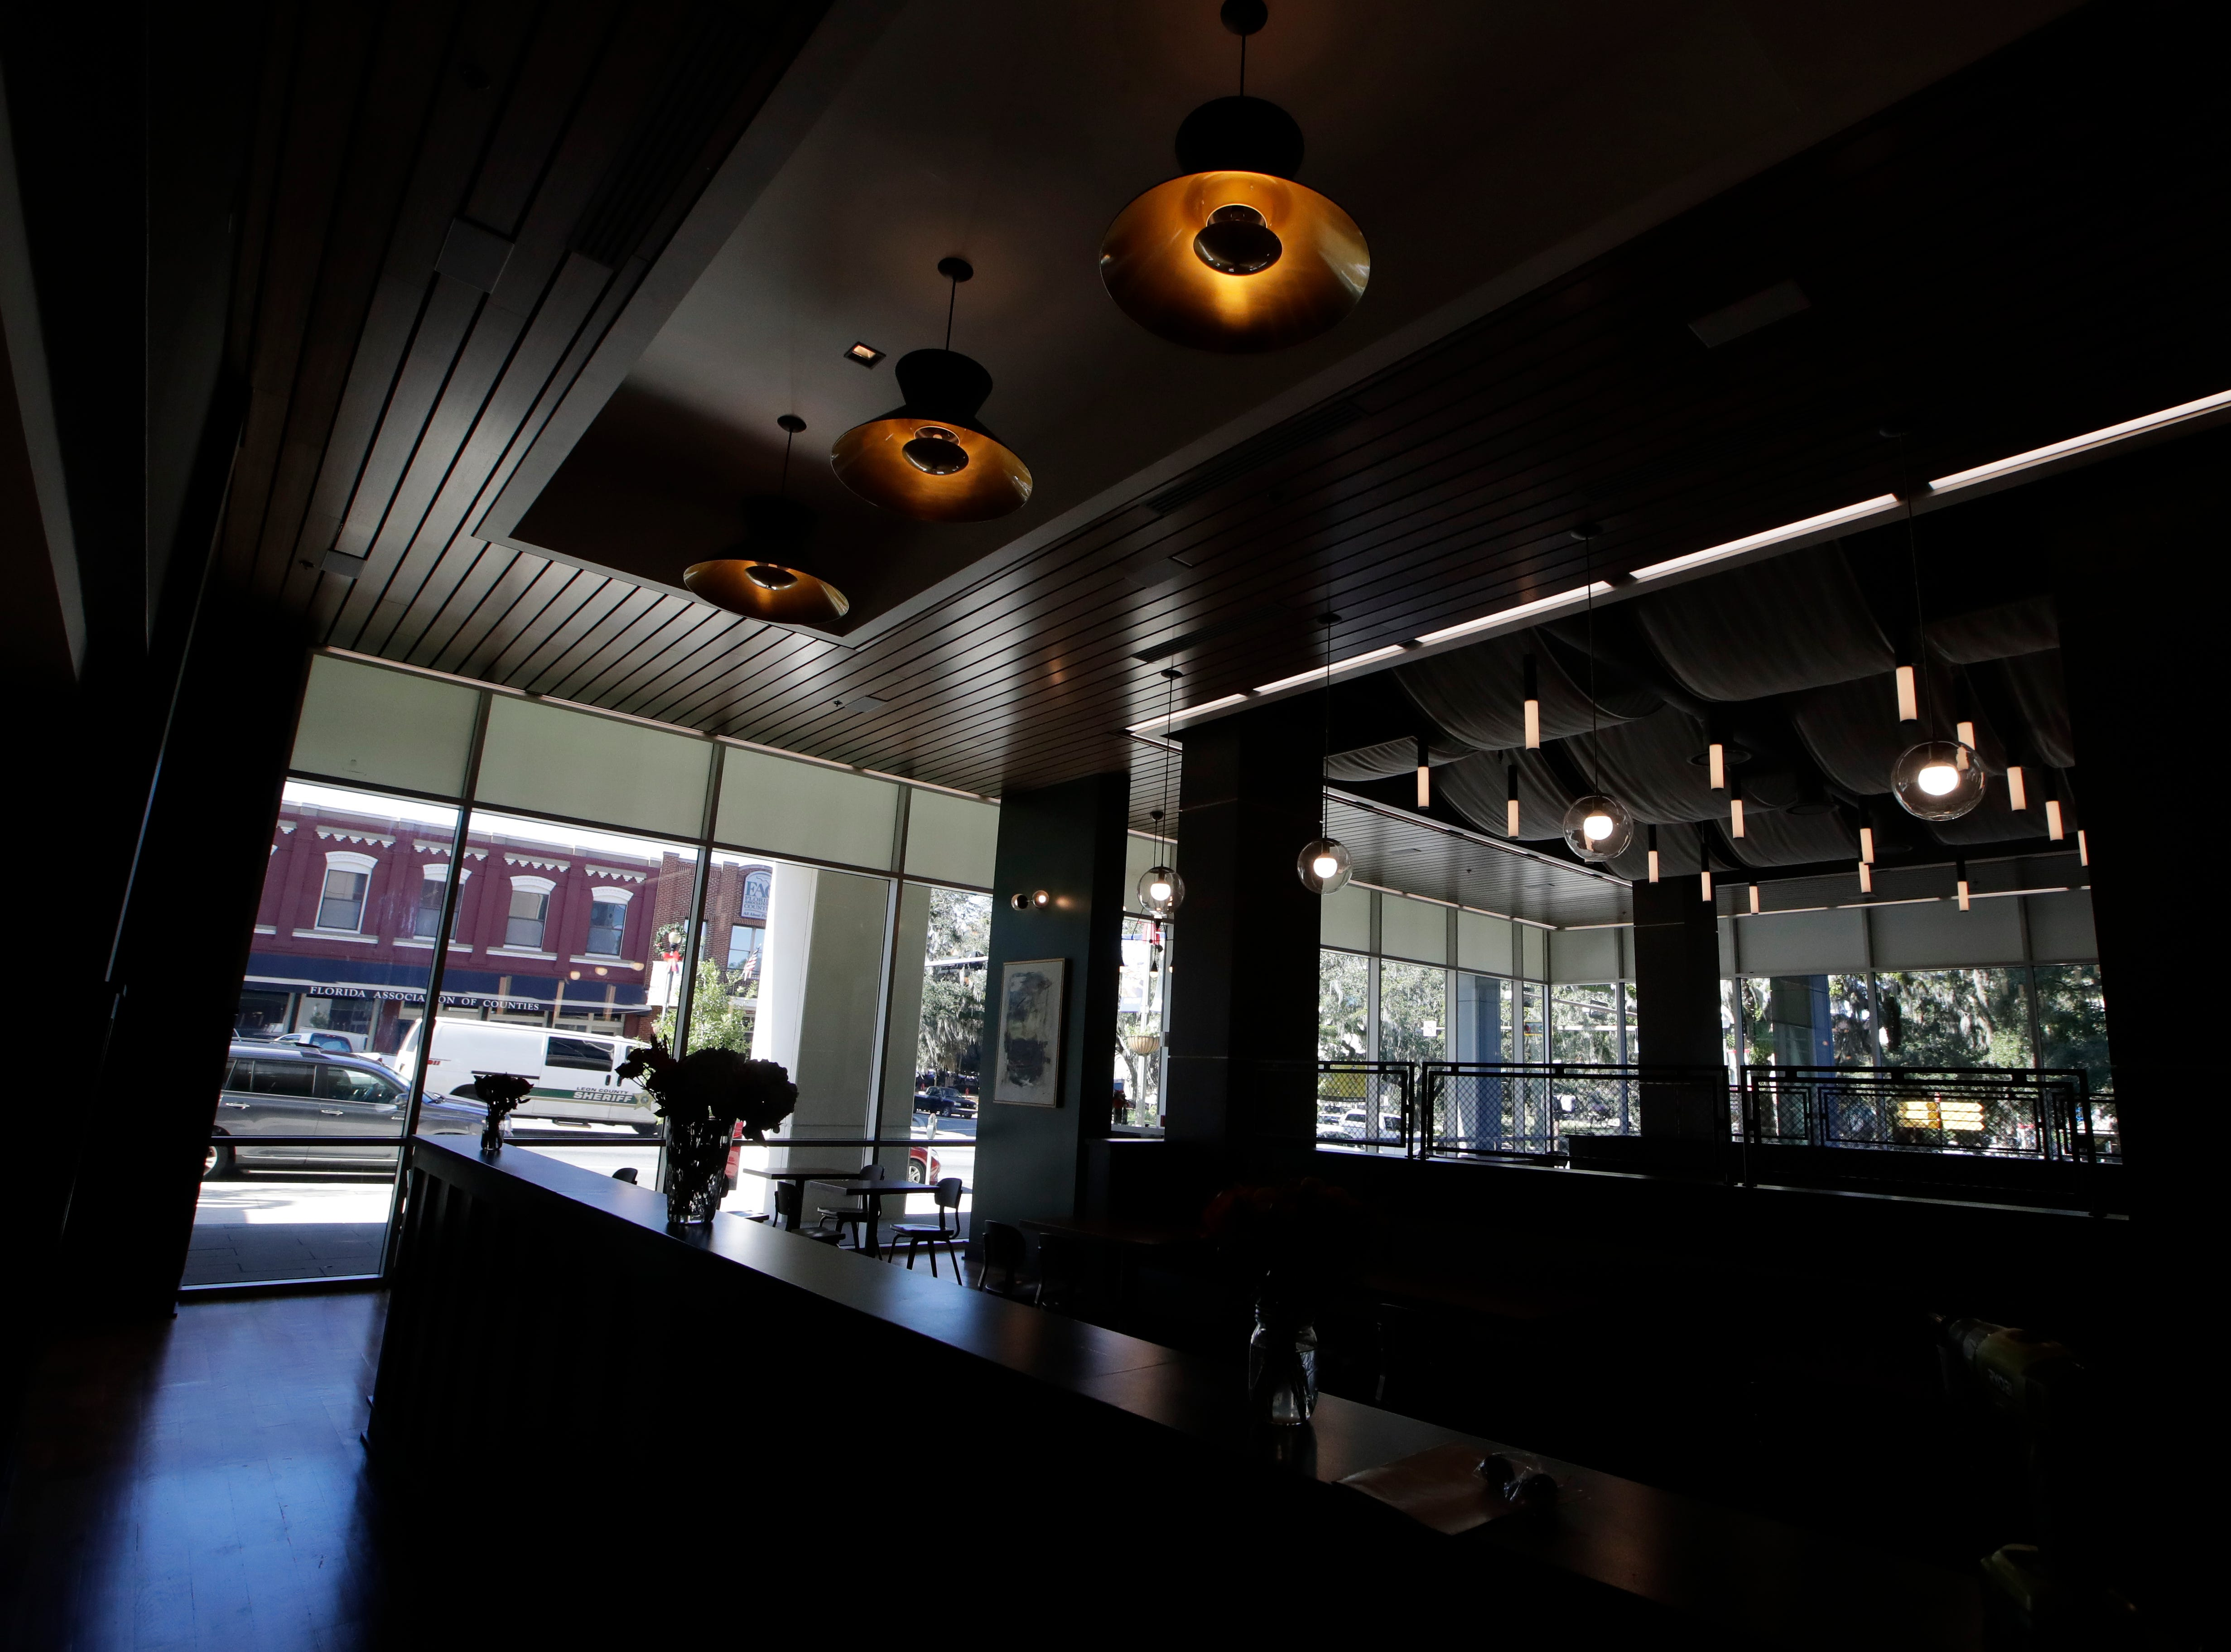 Il Lusso, an Italian restaurant and steak house, will open Thursday, Dec. 6, 2018, at 201 E. Park Ave. in downtown Tallahassee.